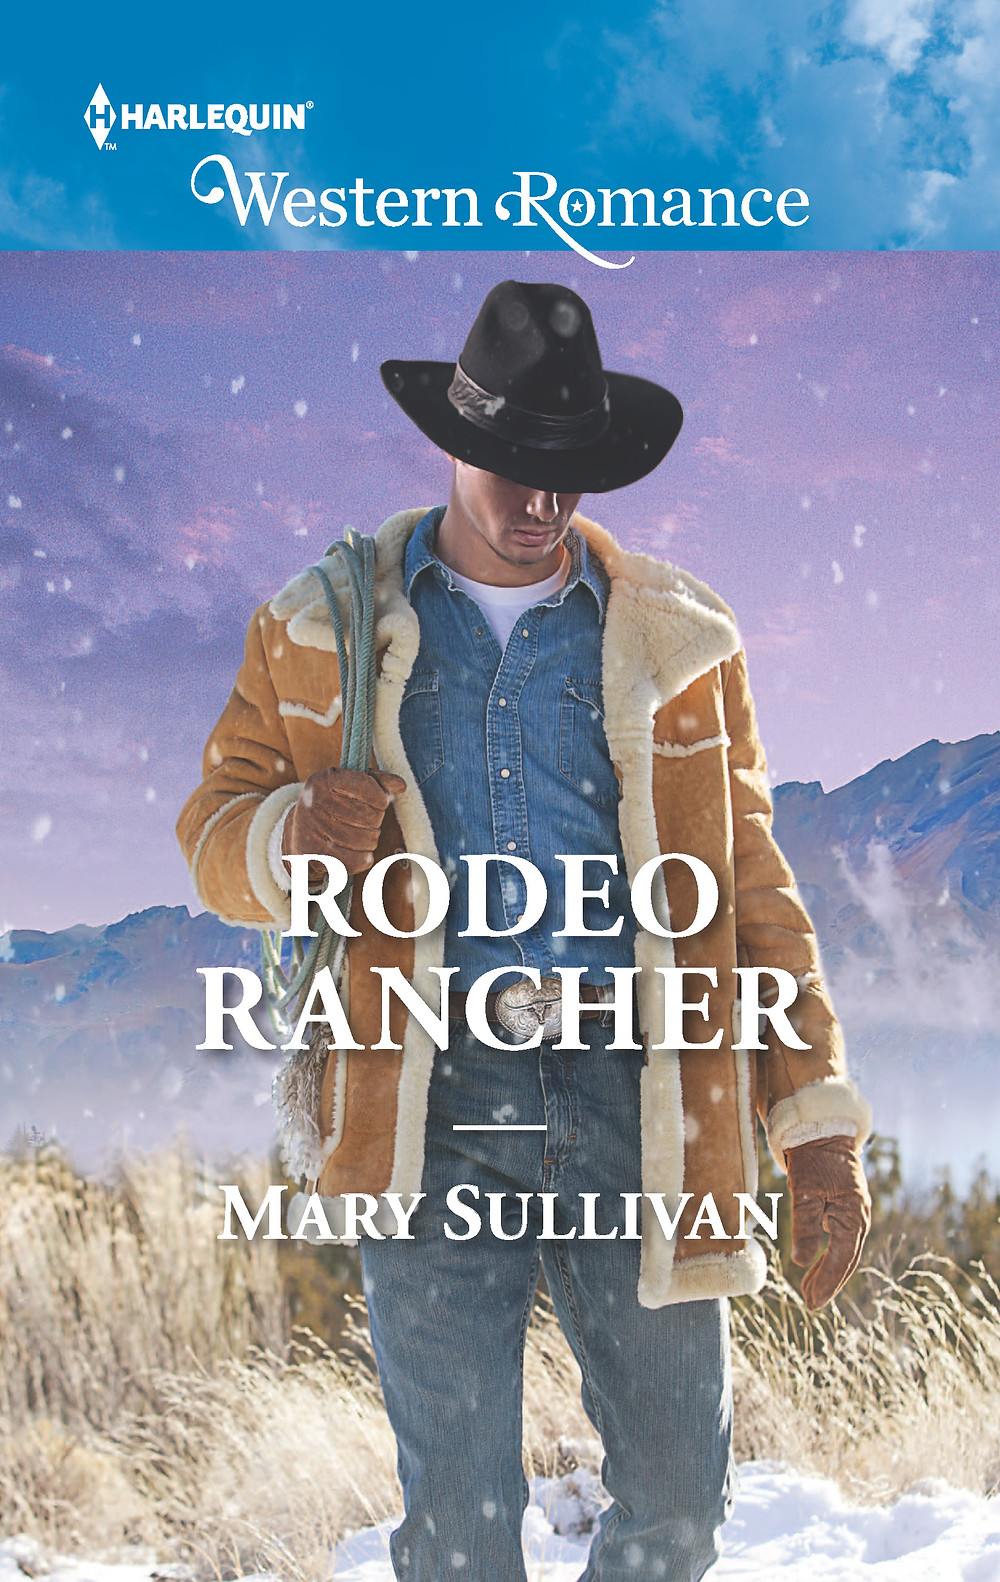 RODEO RANCHER by Mary Sullivan